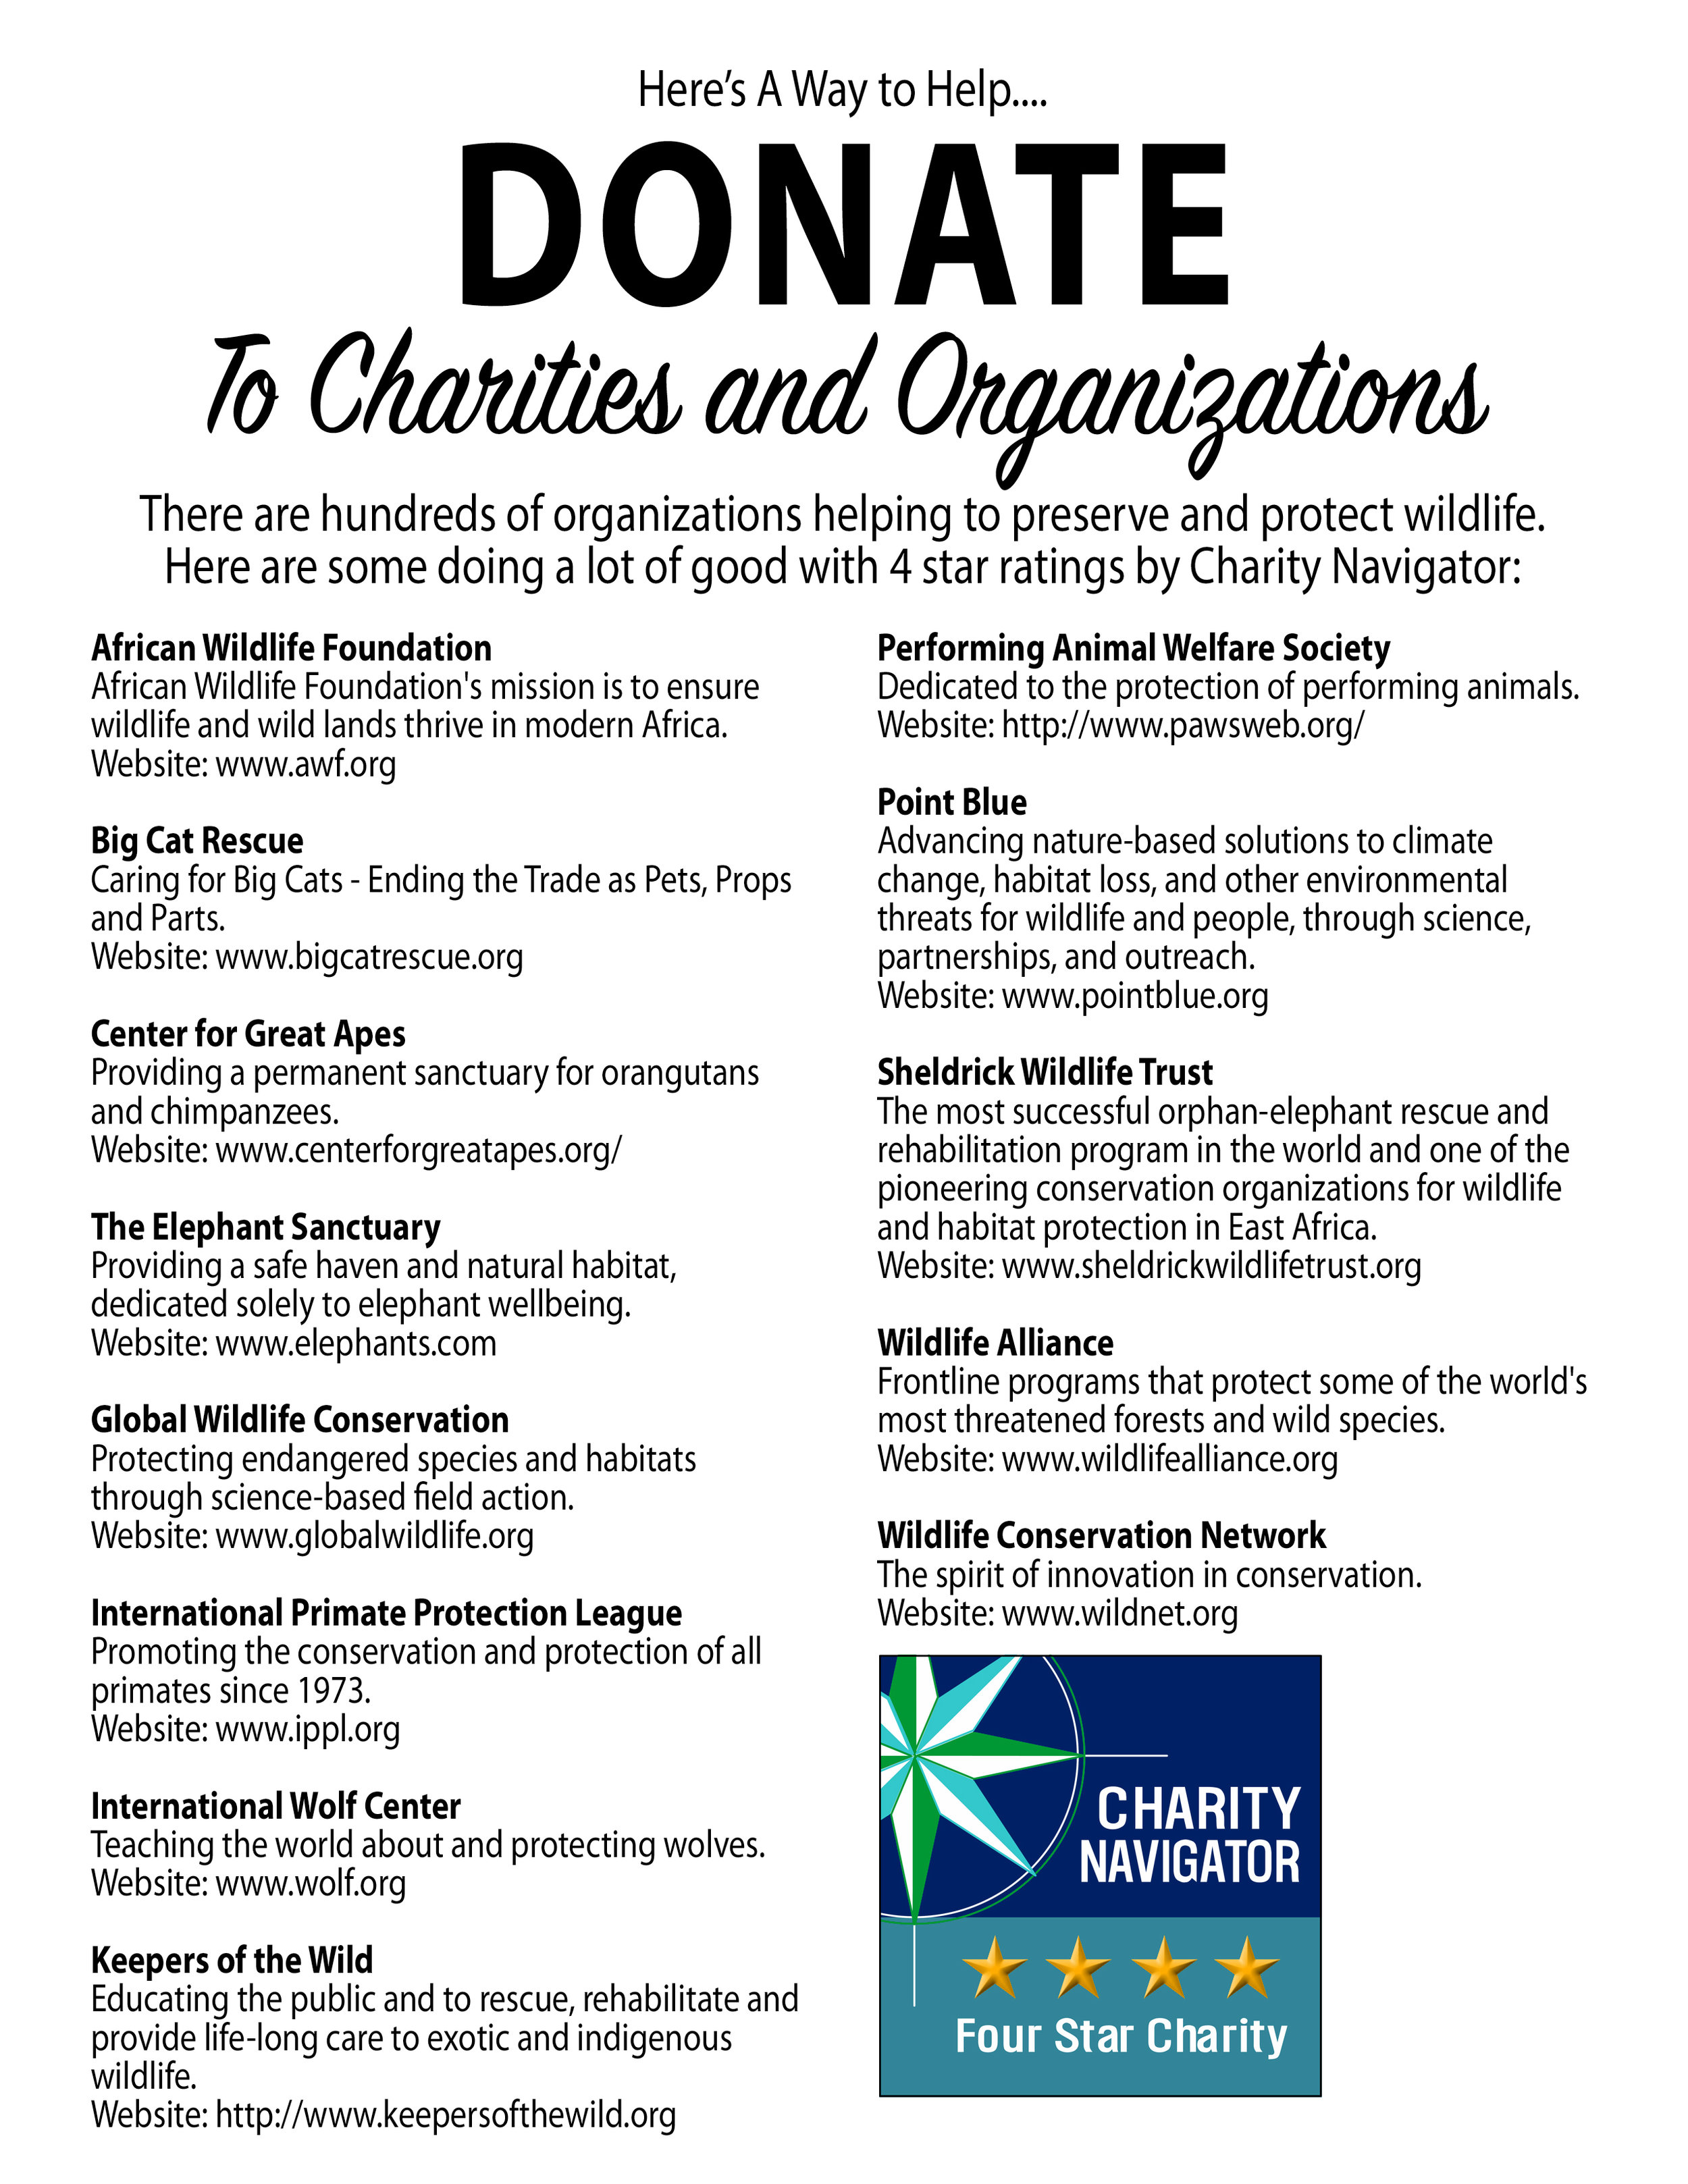 Places to donate.jpg